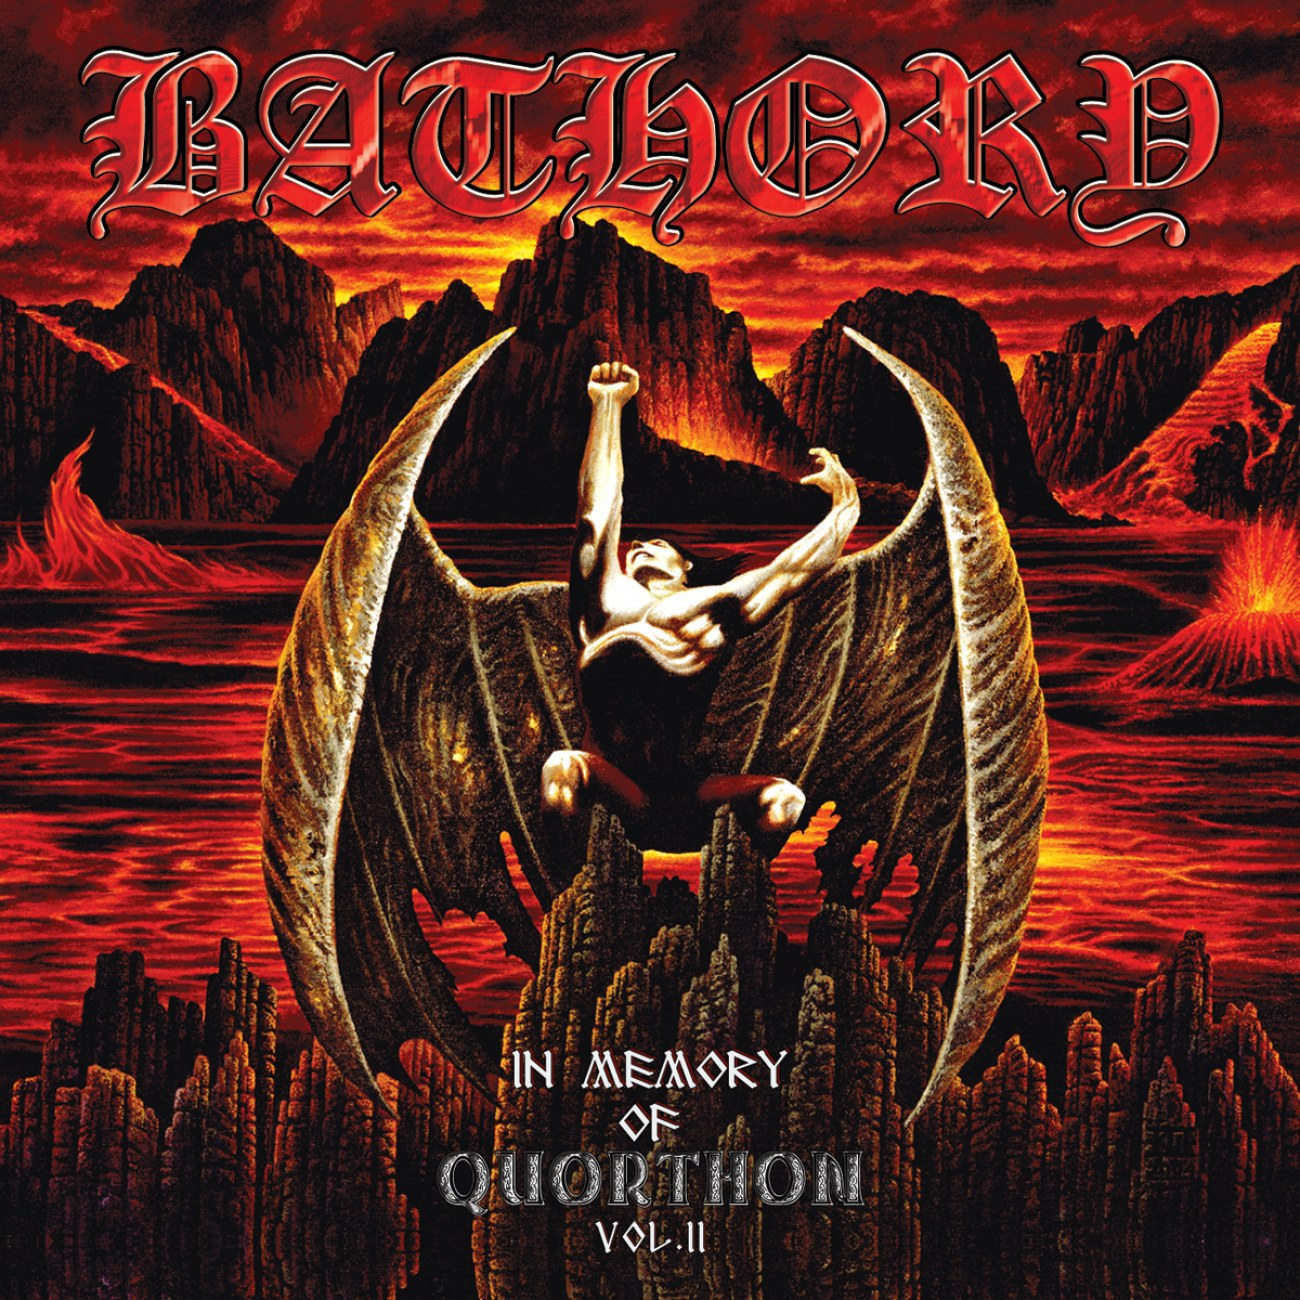 Review for Bathory - In Memory of Quorthon (Vol. II)